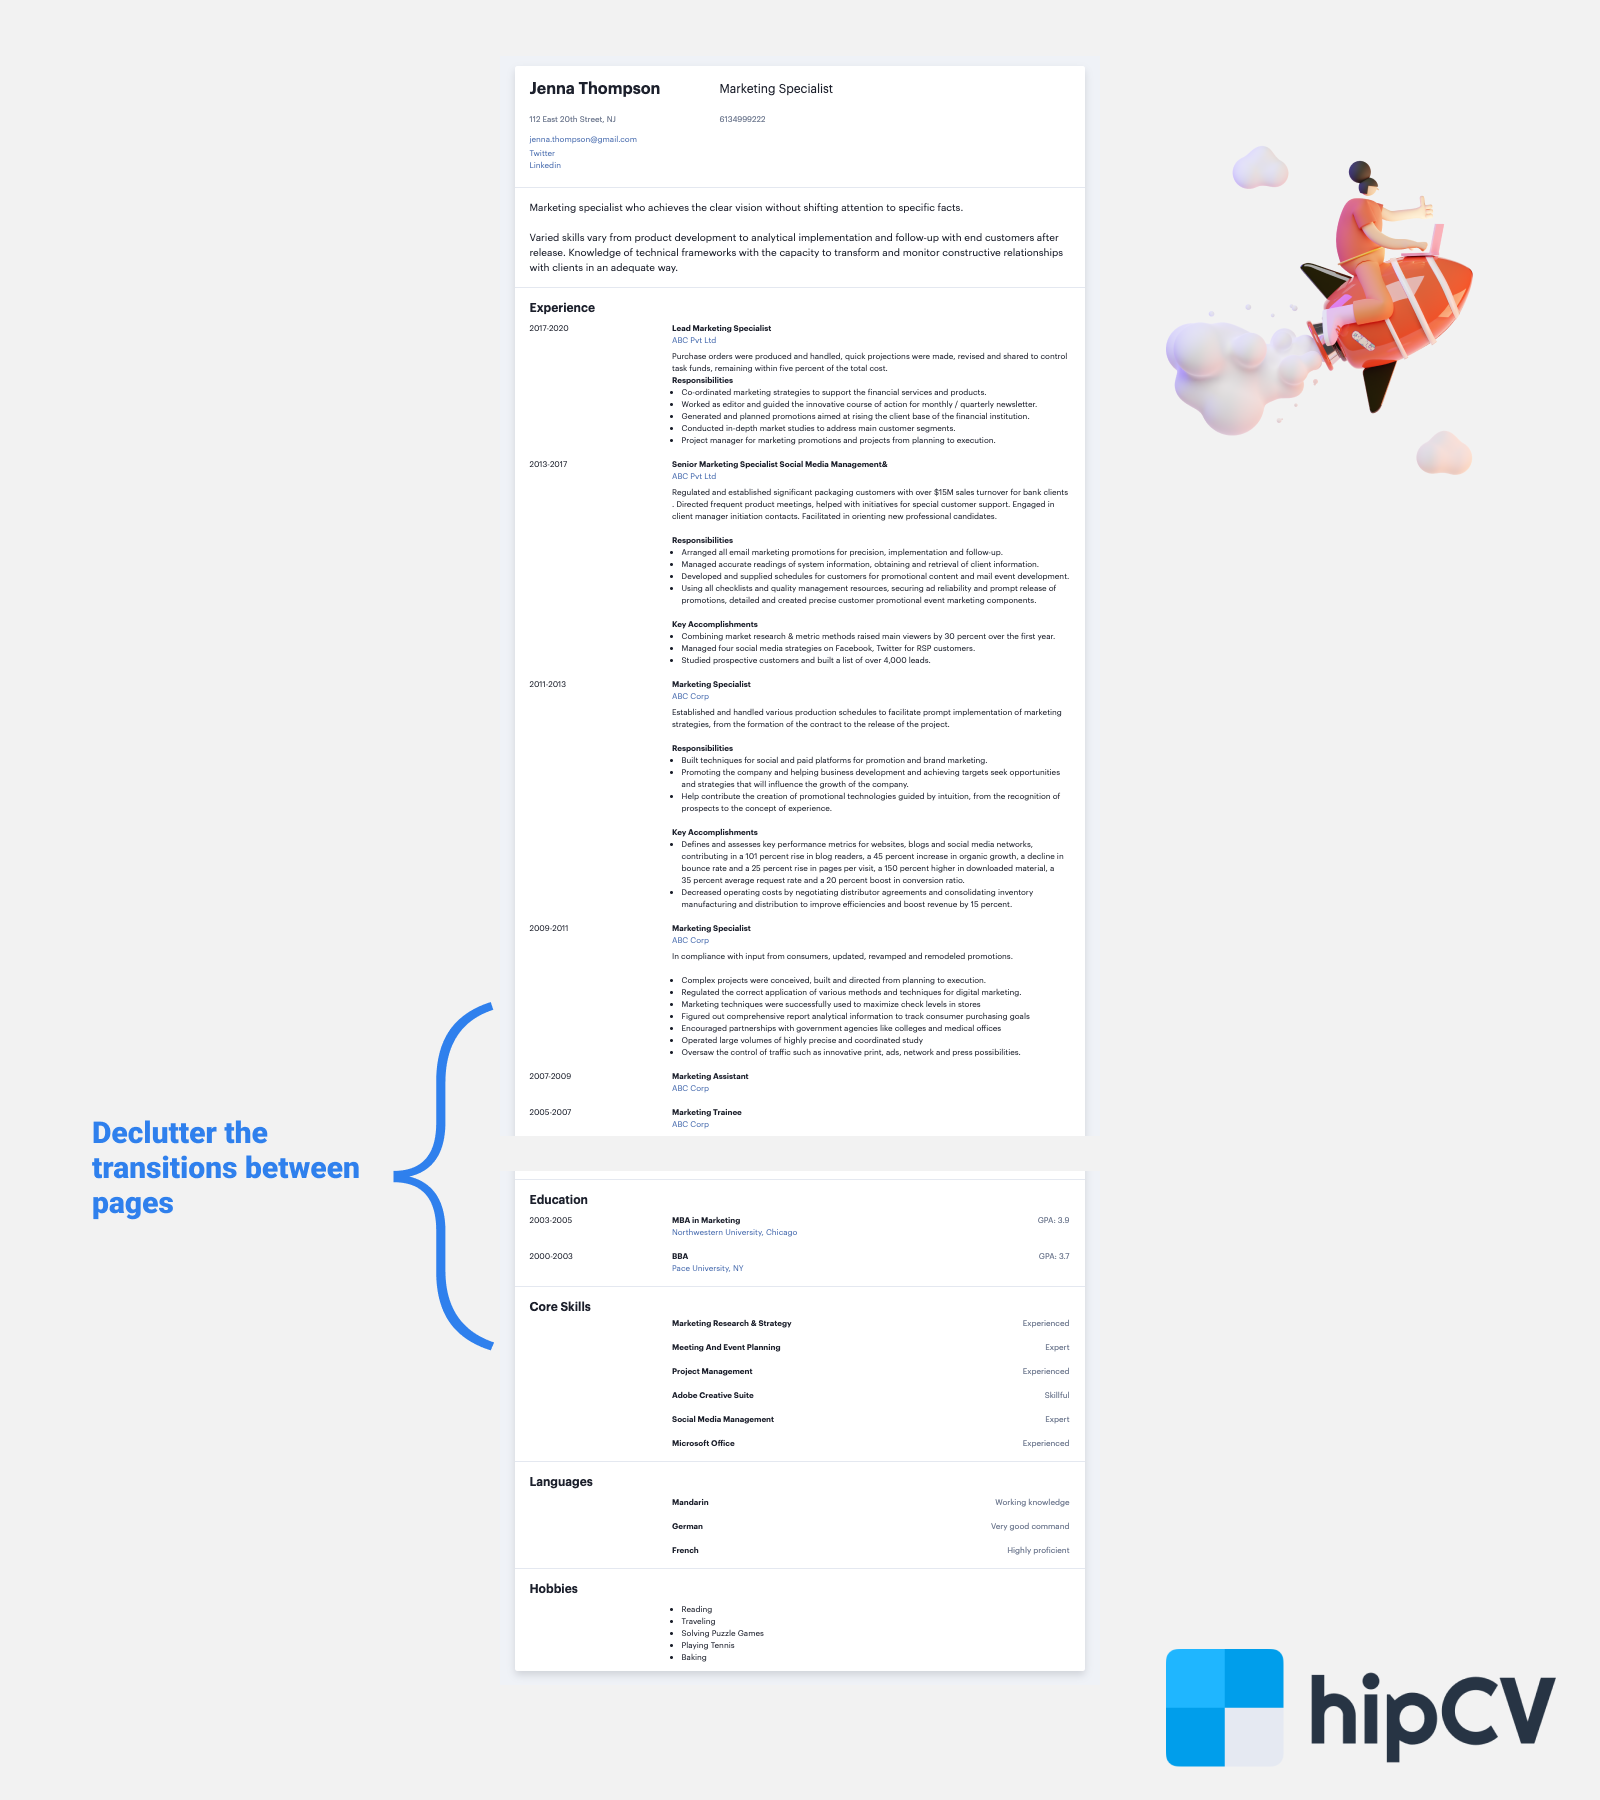 Image for part: 17. Declutter the transitions for your 2-3 page CV